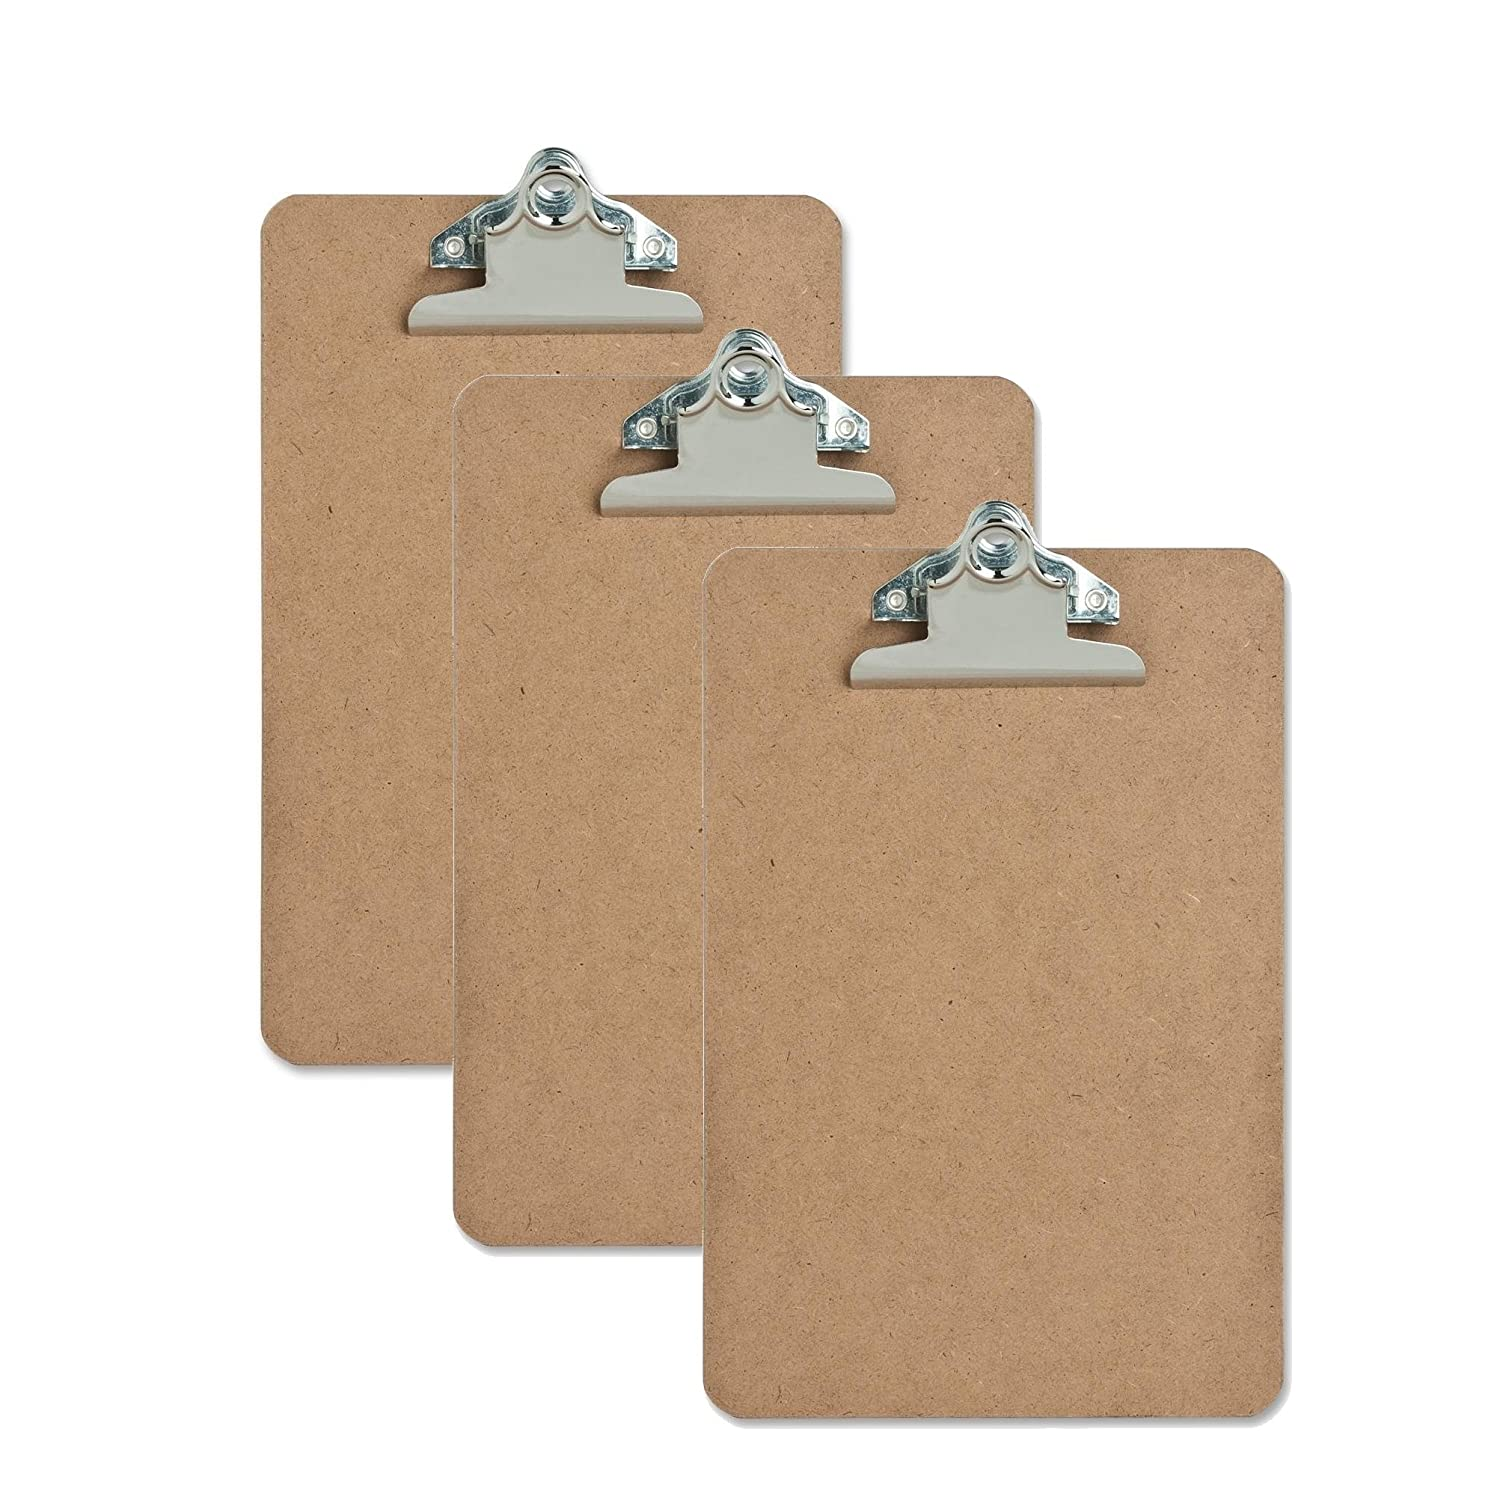 Mini Clipboard Hardboard 12 Pack Image 1